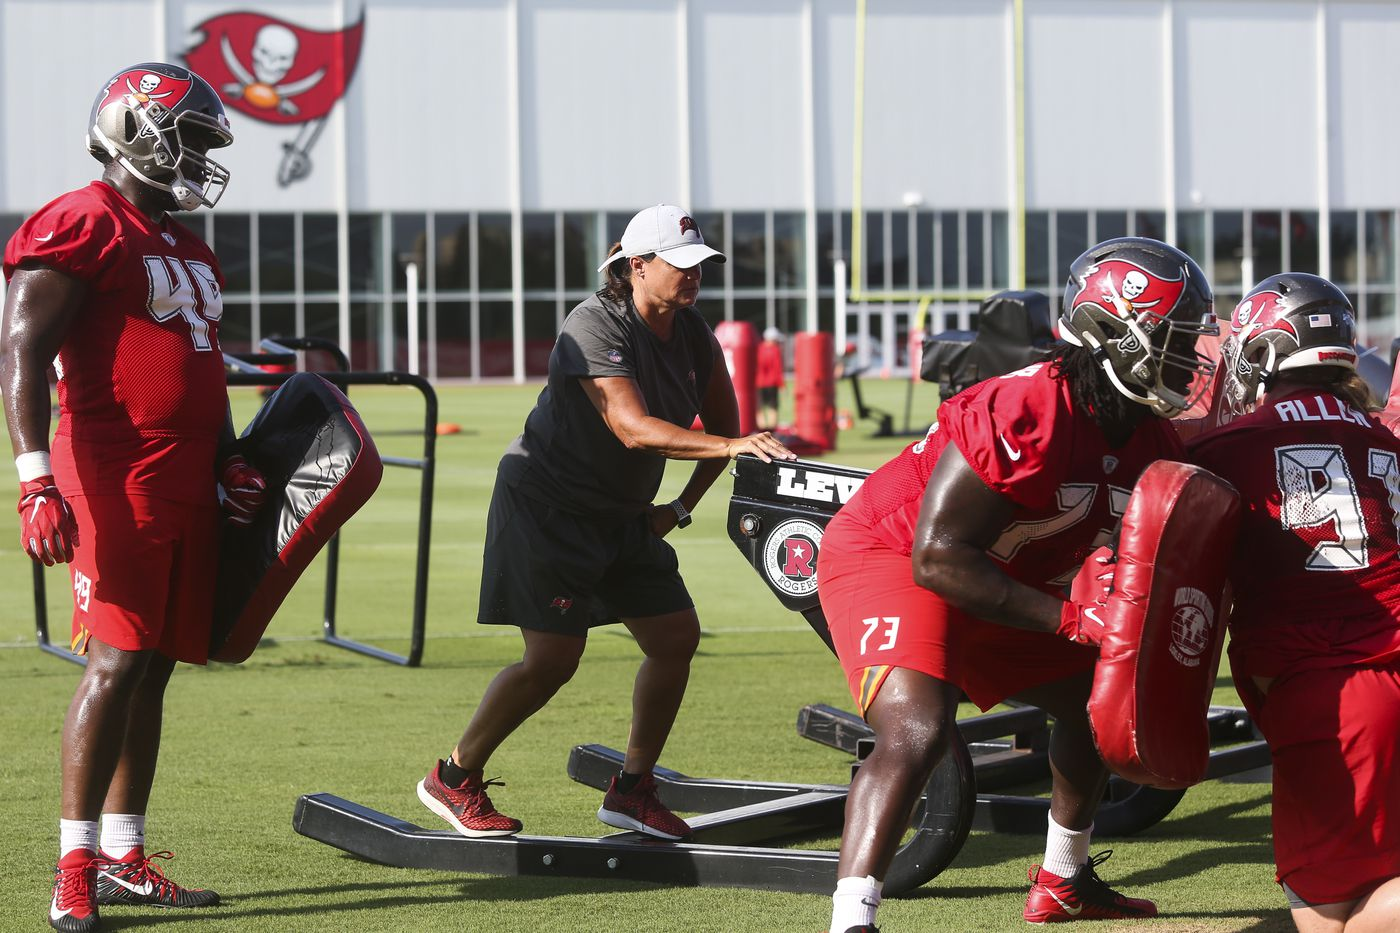 Locust on the sled while running drills with Tampa Bay players during minicamp.